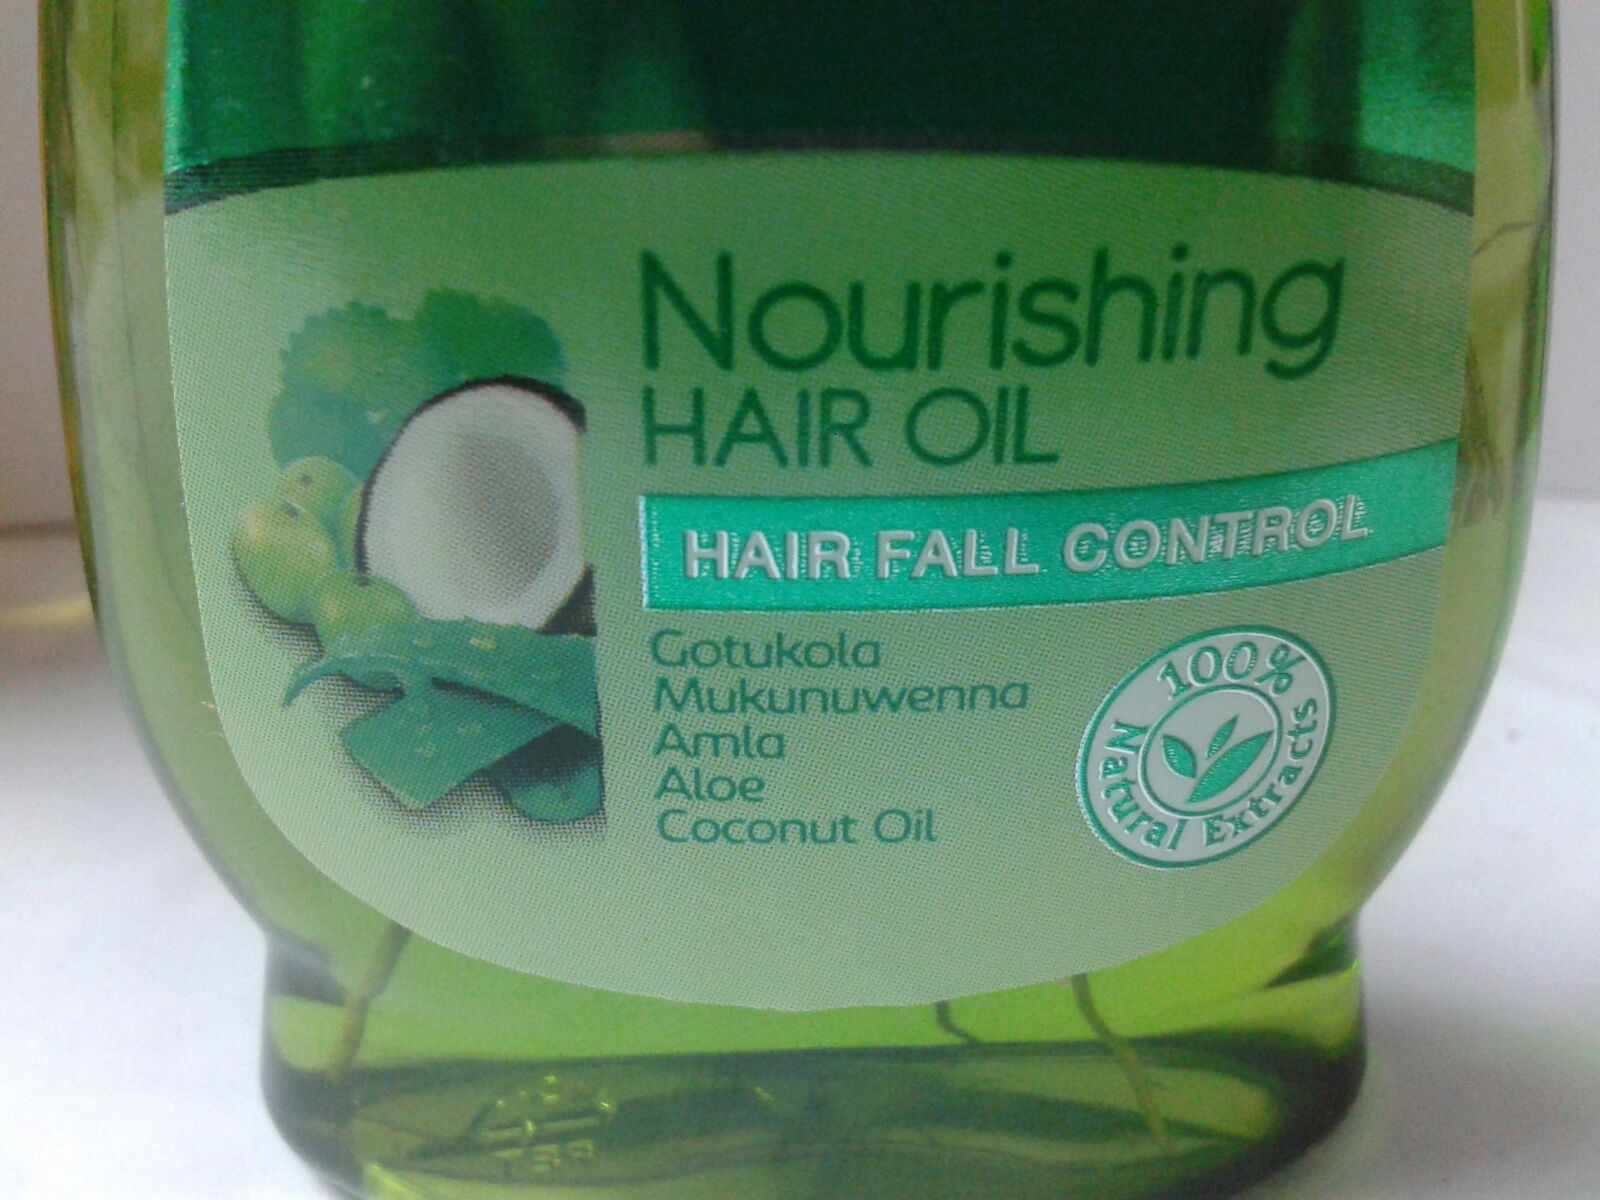 KUMARIKA NOURISHING HAIR OIL - HAIR FALL CONTROL